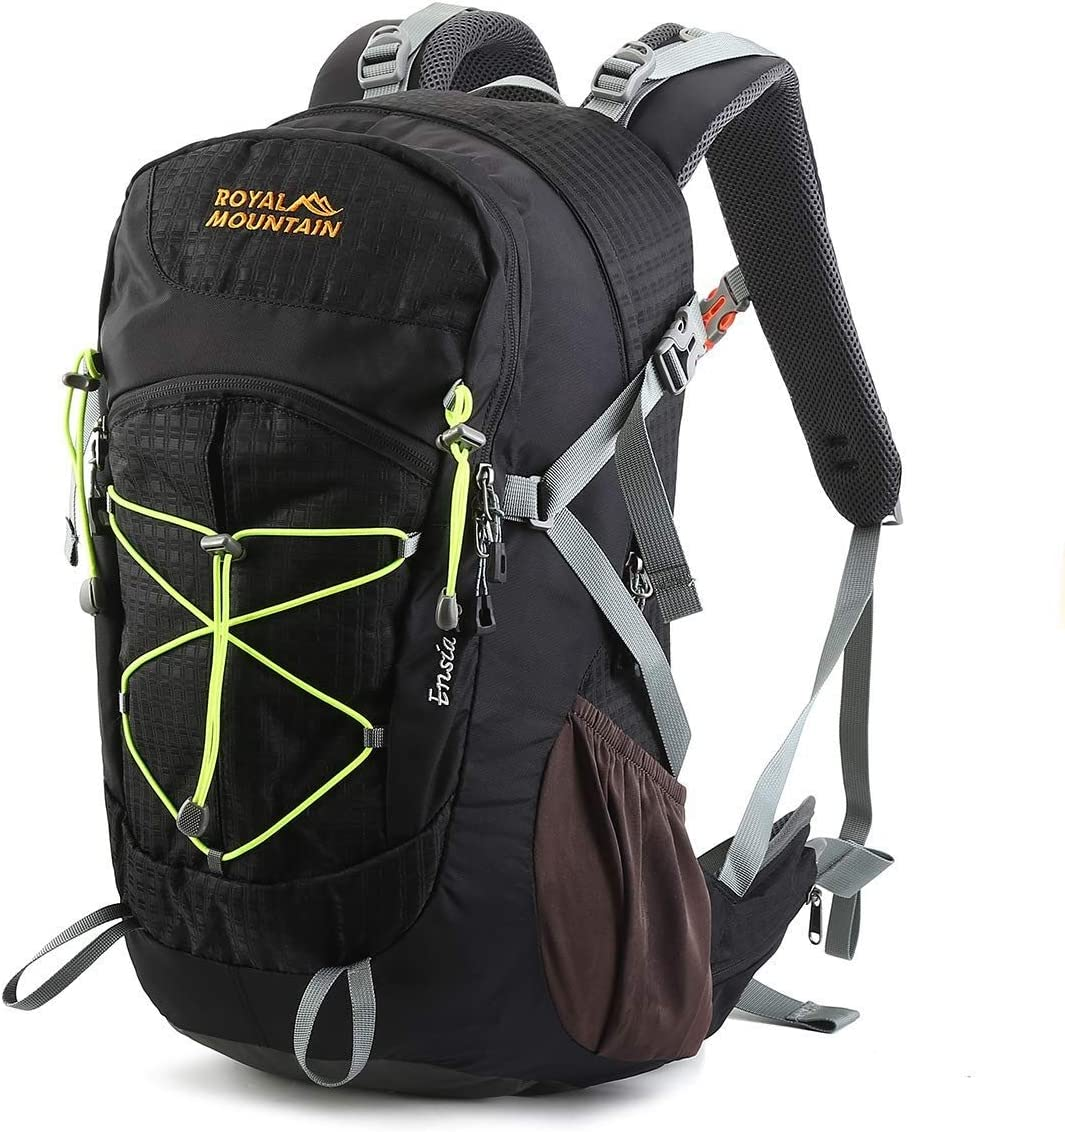 Long-awaited LOCALLION Hiking Backpacks Cycling Backpack Daypa Travel 30L Free shipping 20L